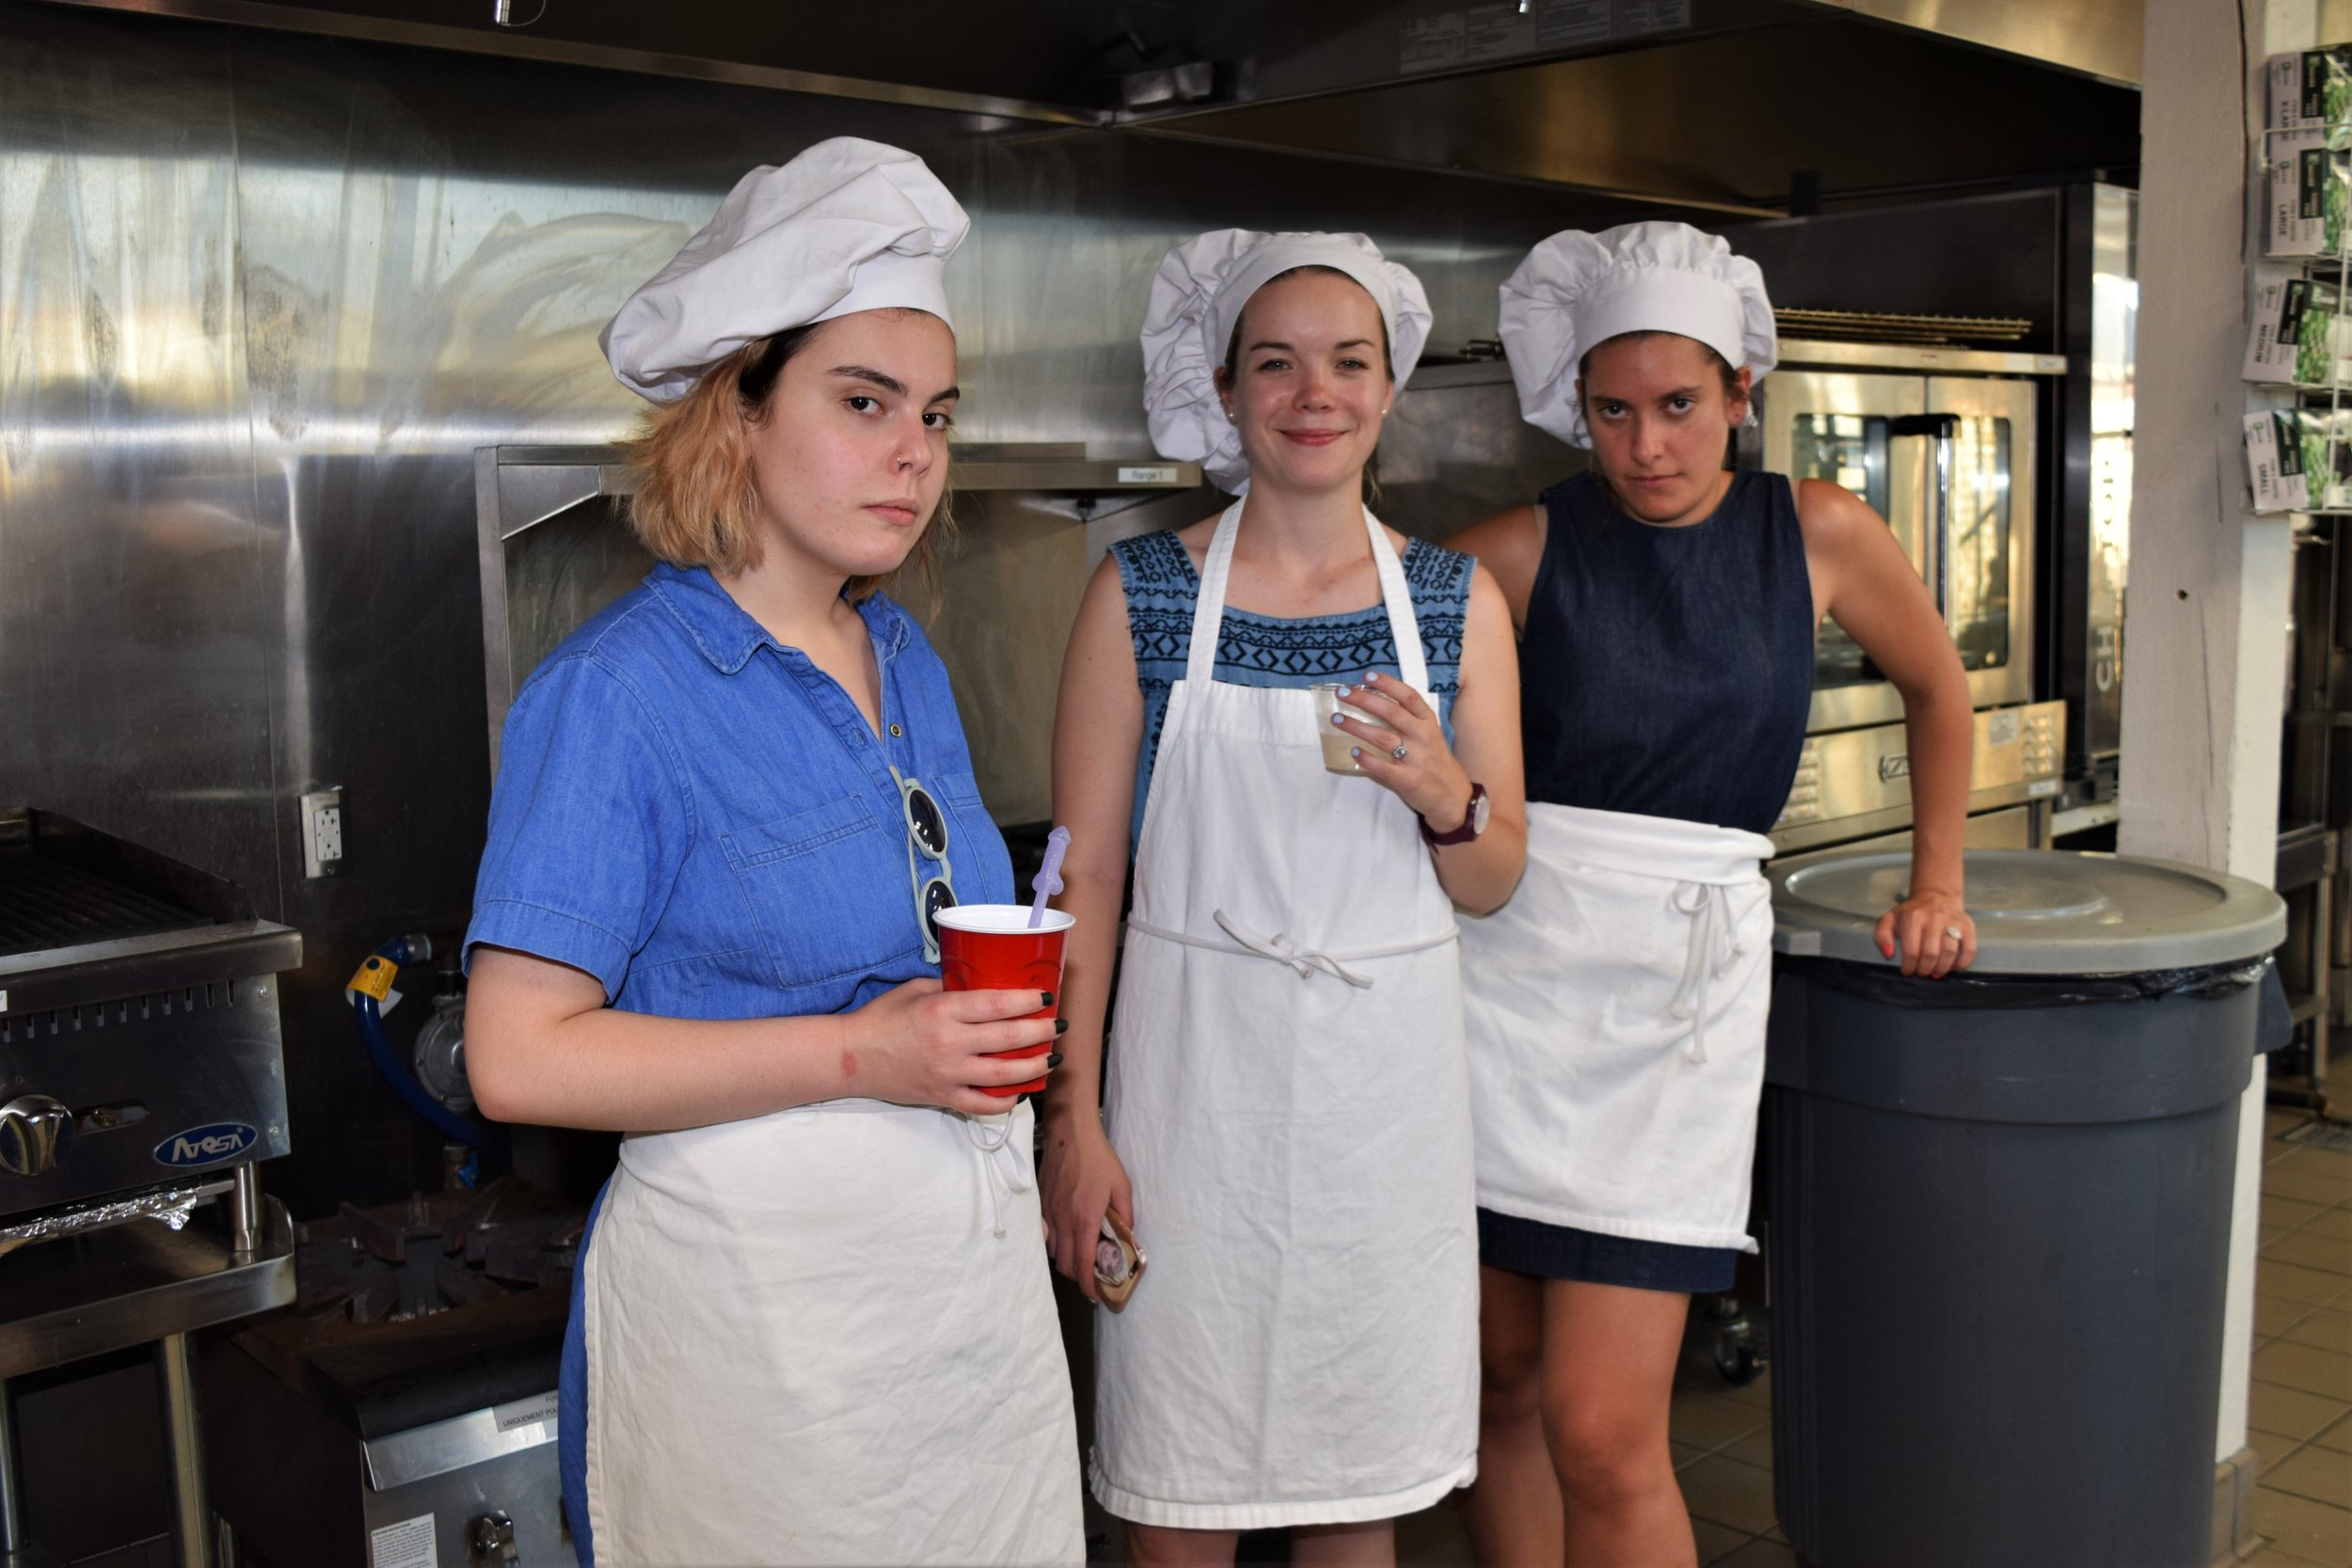 Bachelorette and Maid of Honor taking judging cooking competition seriously